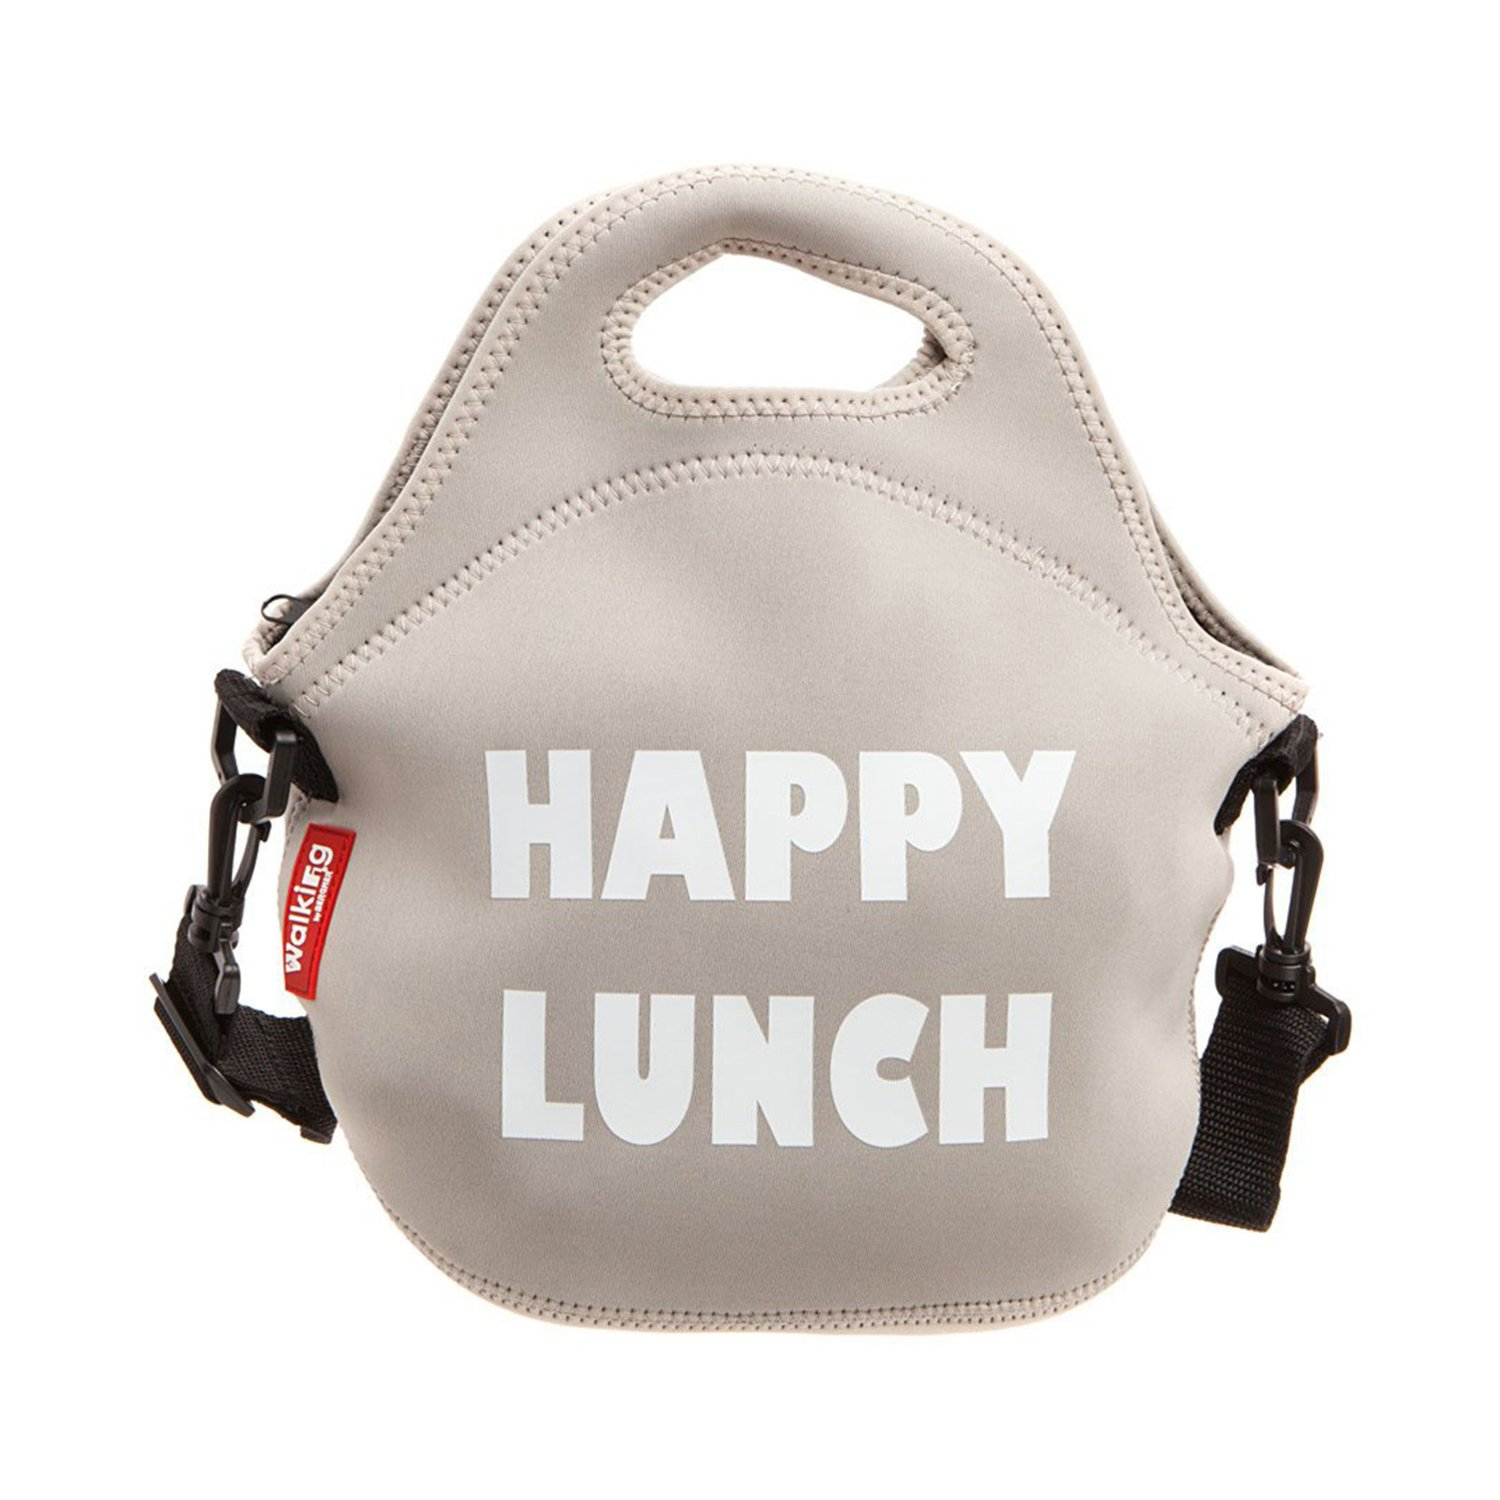 Bergner Happy Lunch - Bolsa de Almuerzo, 30 x 30 x 17 cm